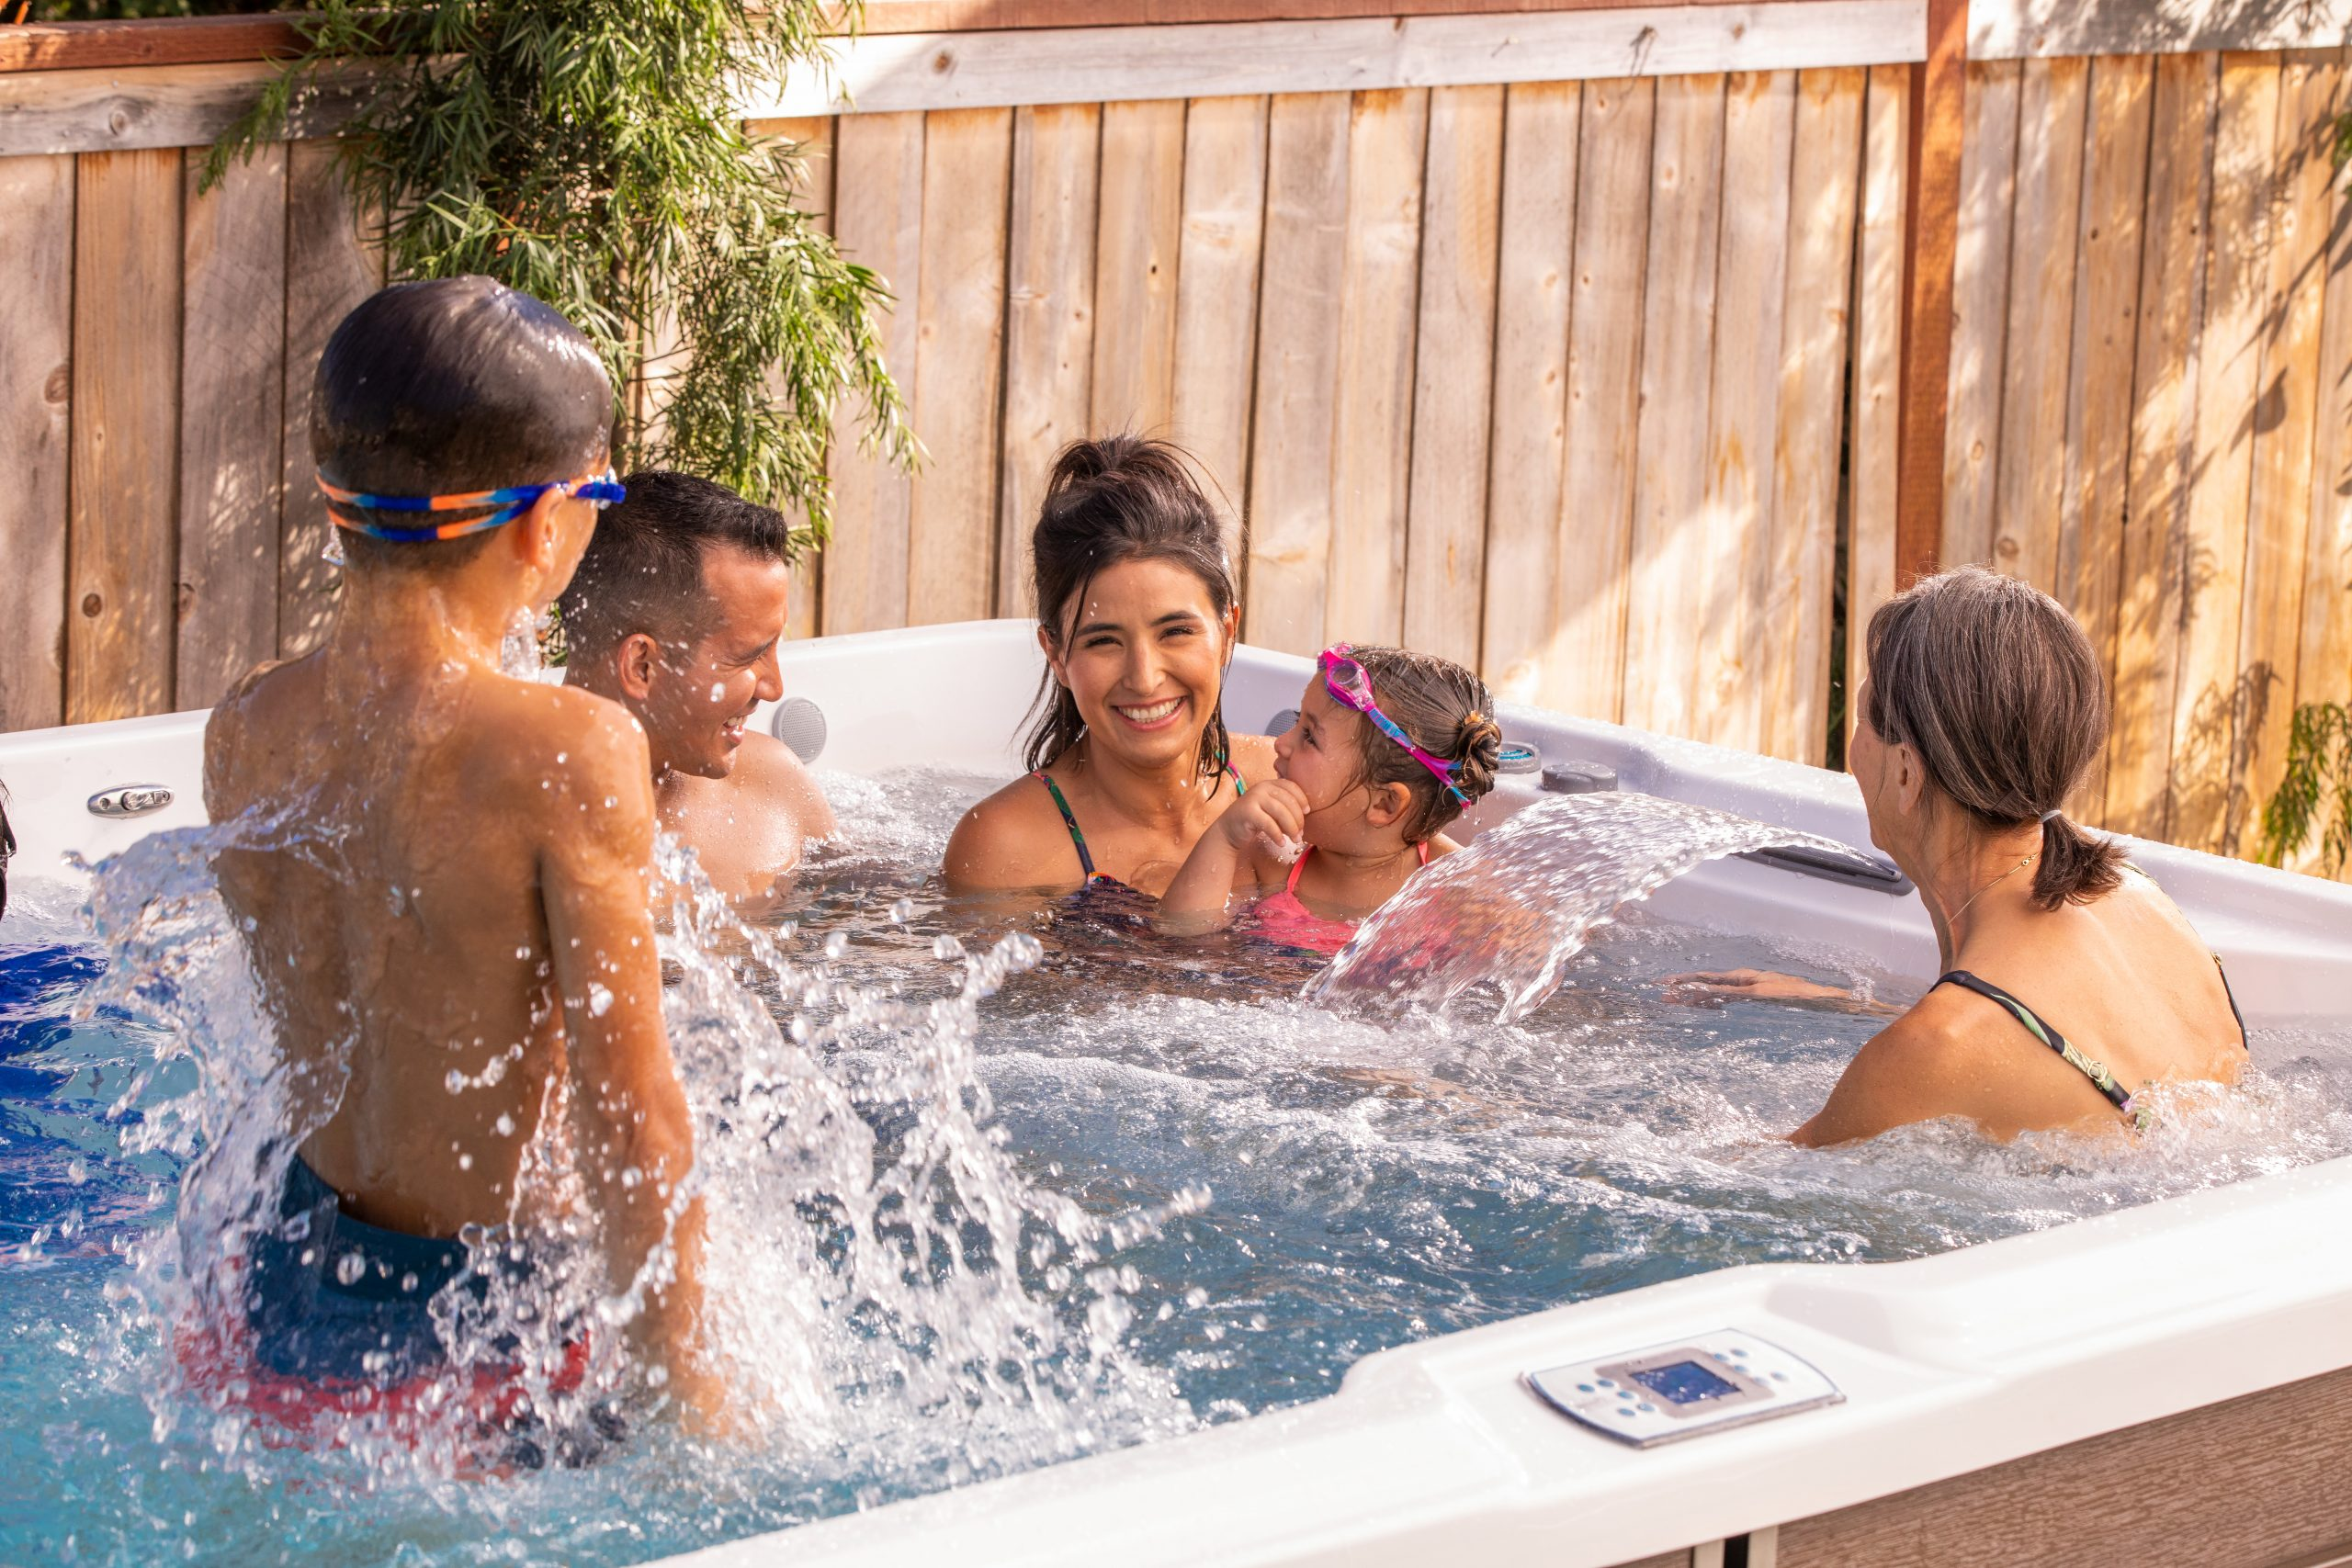 The Benefits of Spending Time with your Family in a Hot Tub